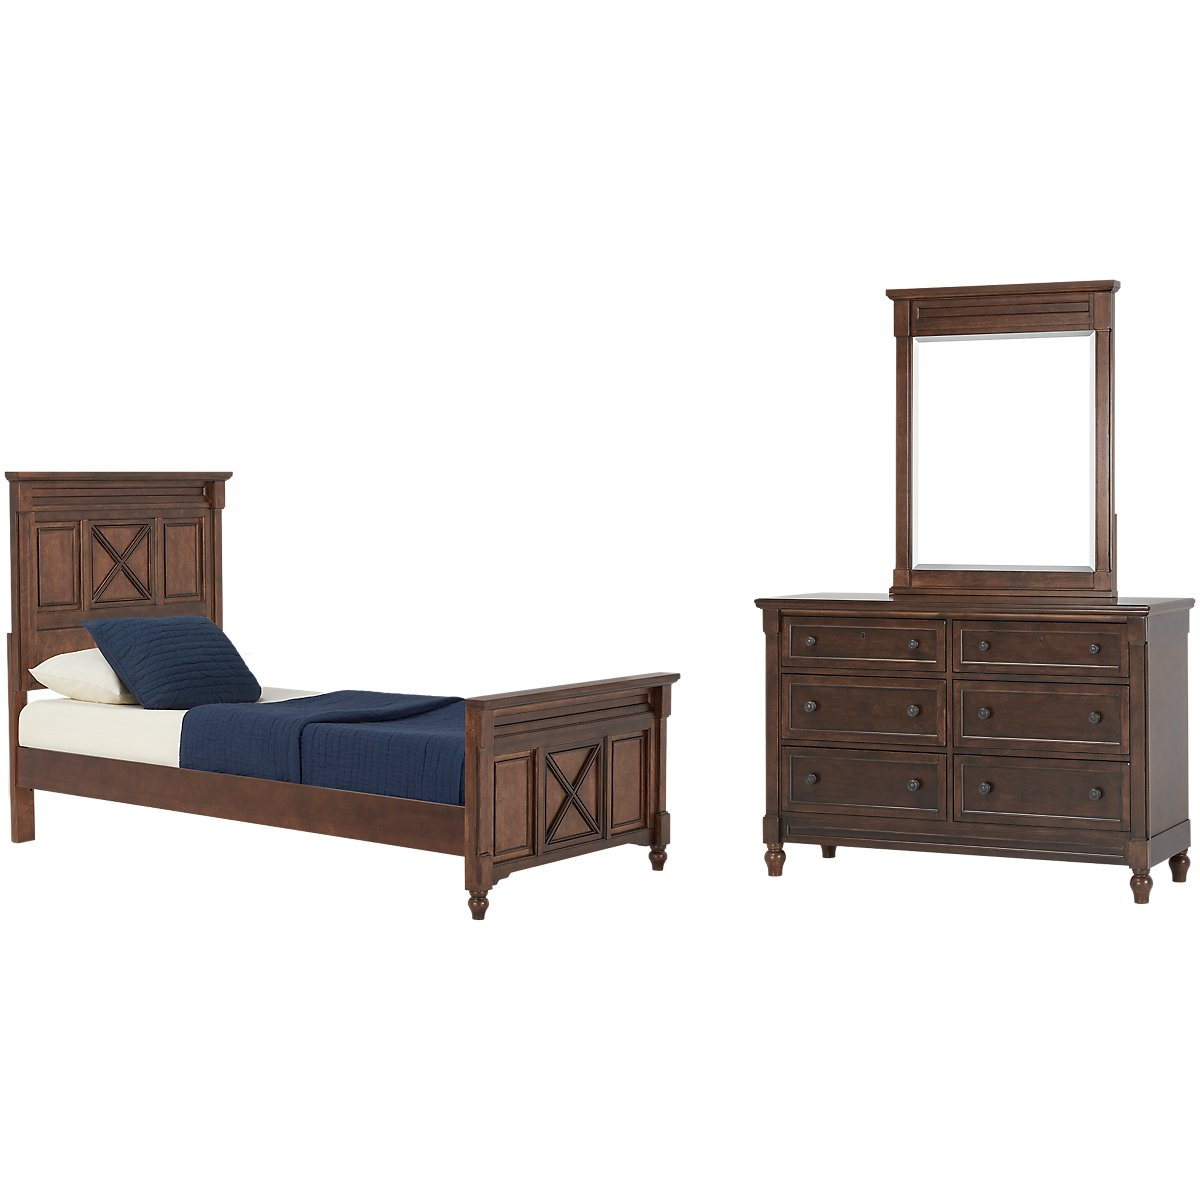 Big Sur Dark Tone Panel Bedroom